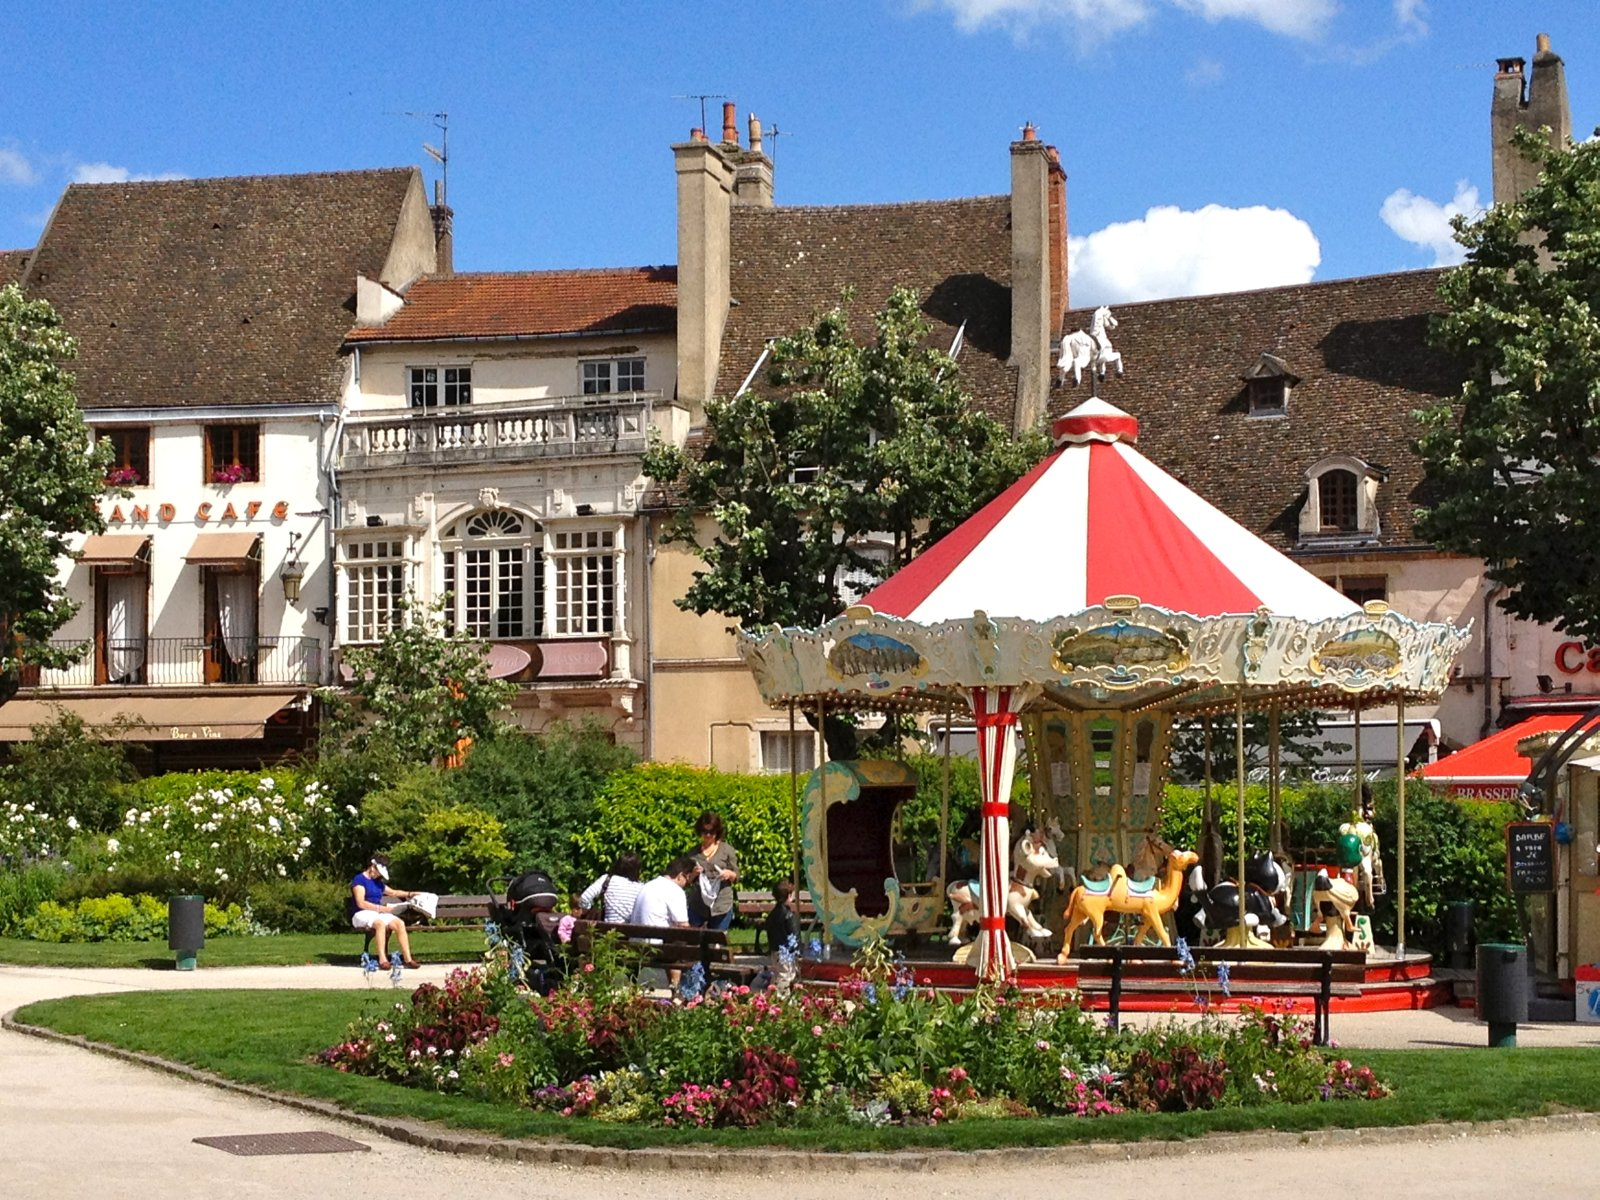 Postcard From Burgundy - Part 3 - Bopping Around Beaune